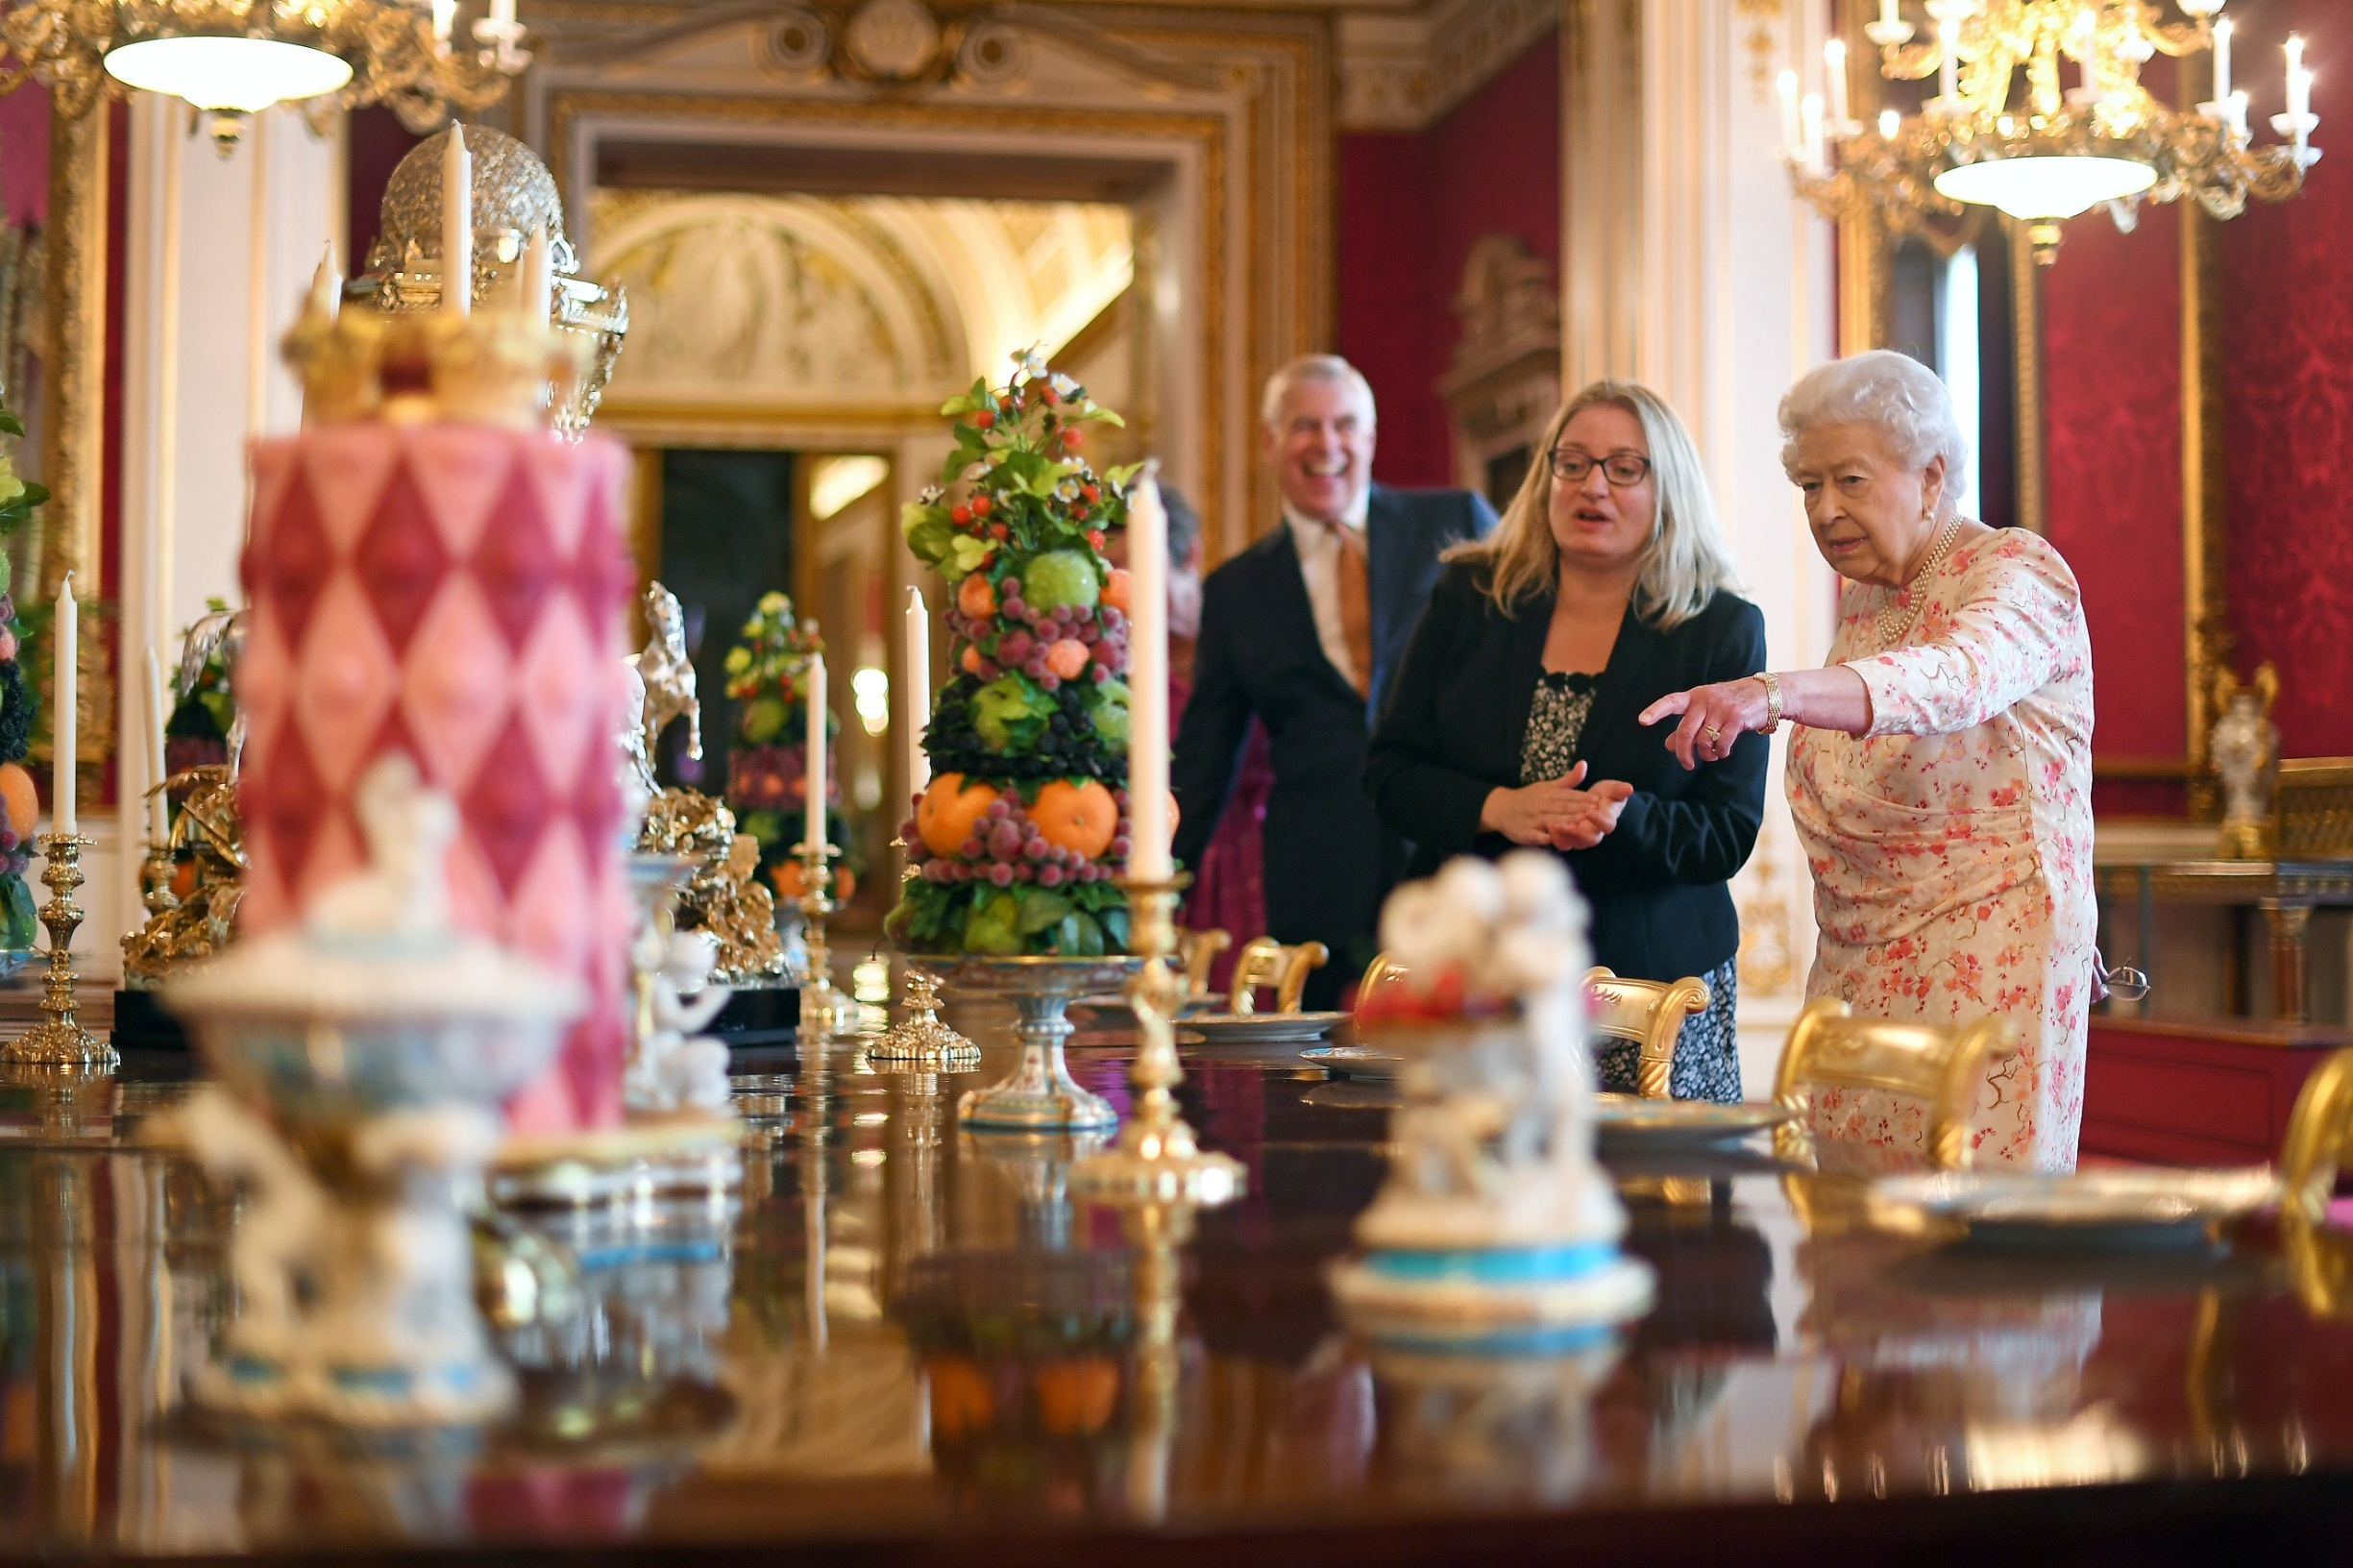 LONDON, ENGLAND - JULY 17: Queen Elizabeth II looks at a recreation of the 'Victoria' pattern dessert service in the State Dining Room, as part of the exhibition to mark the 200th anniversary of the birth of Queen Victoria for the Summer Opening of Buckingham Palace on July 17, 2019 in London, England. (Photo by Victoria Jones - WPA Pool/Getty Images)